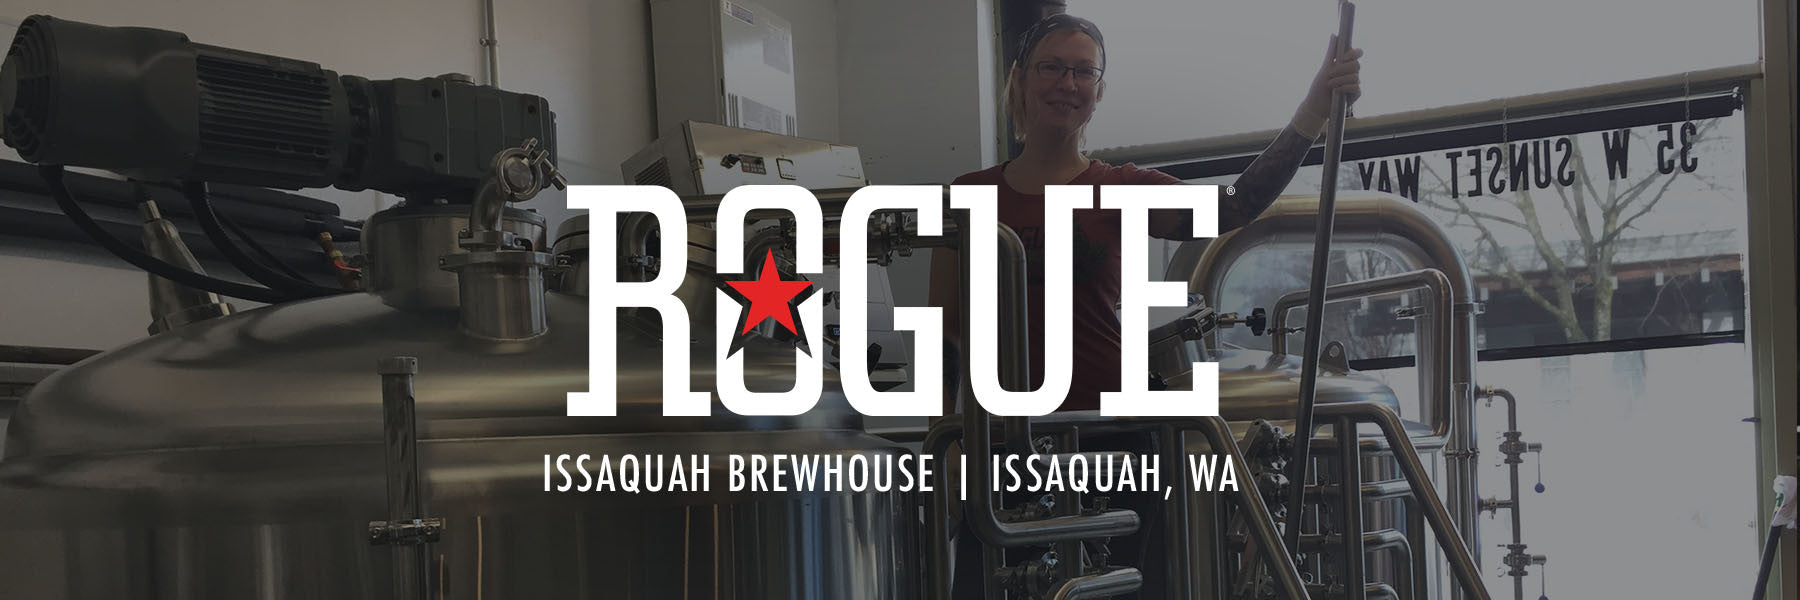 Rouge Ales | Issaquah 5bbl Brewhouse